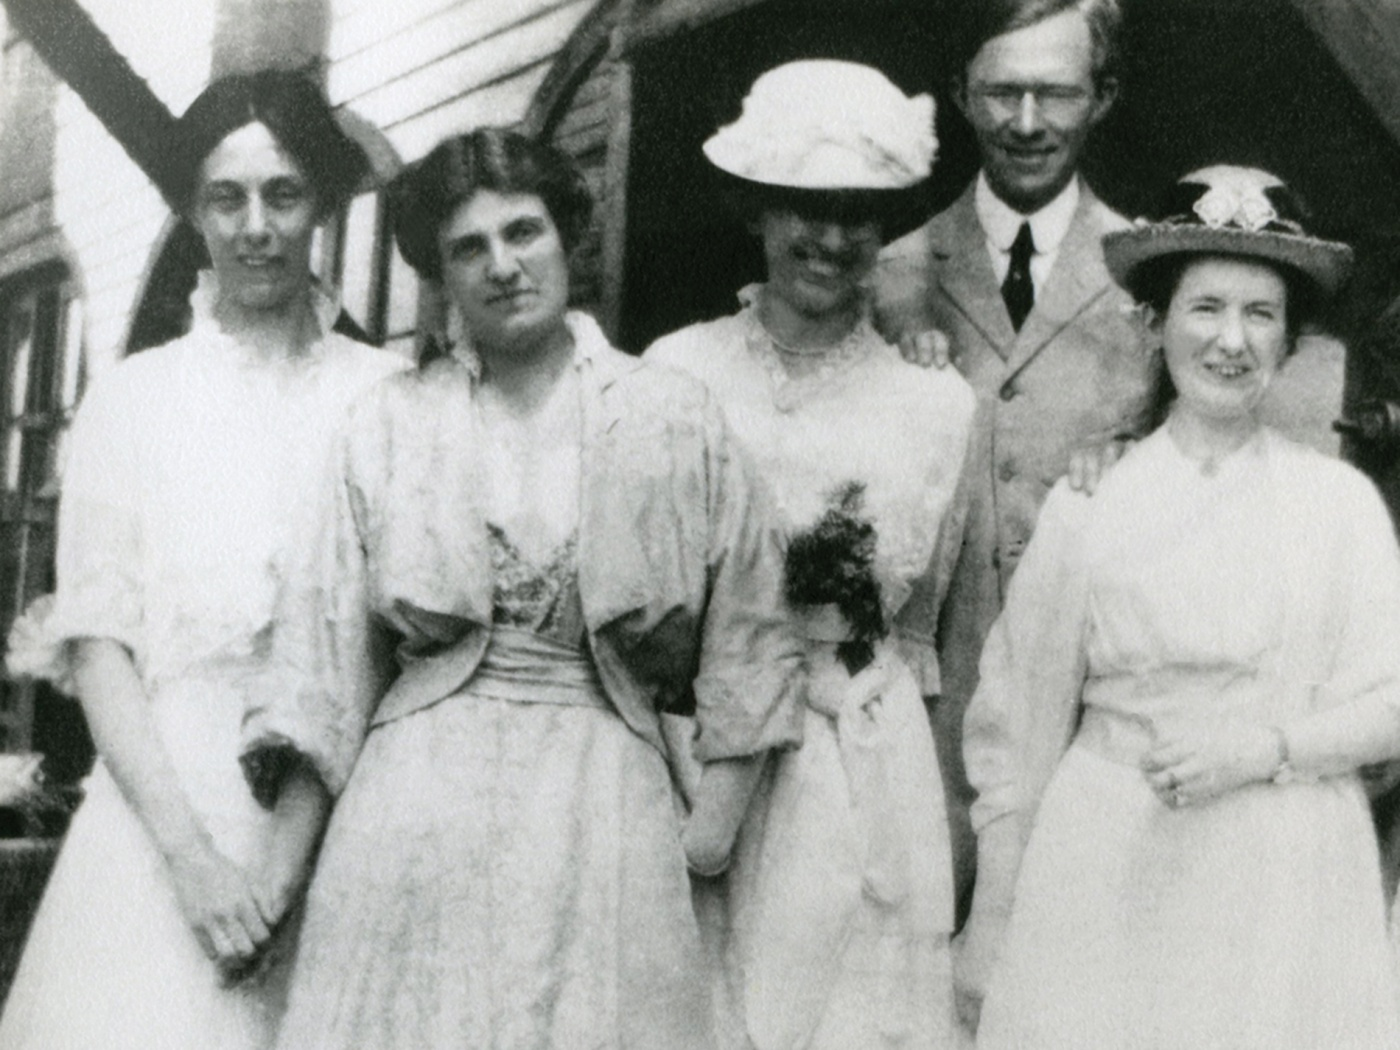 Morriss, second from left, at Mount Holyoke 1915.